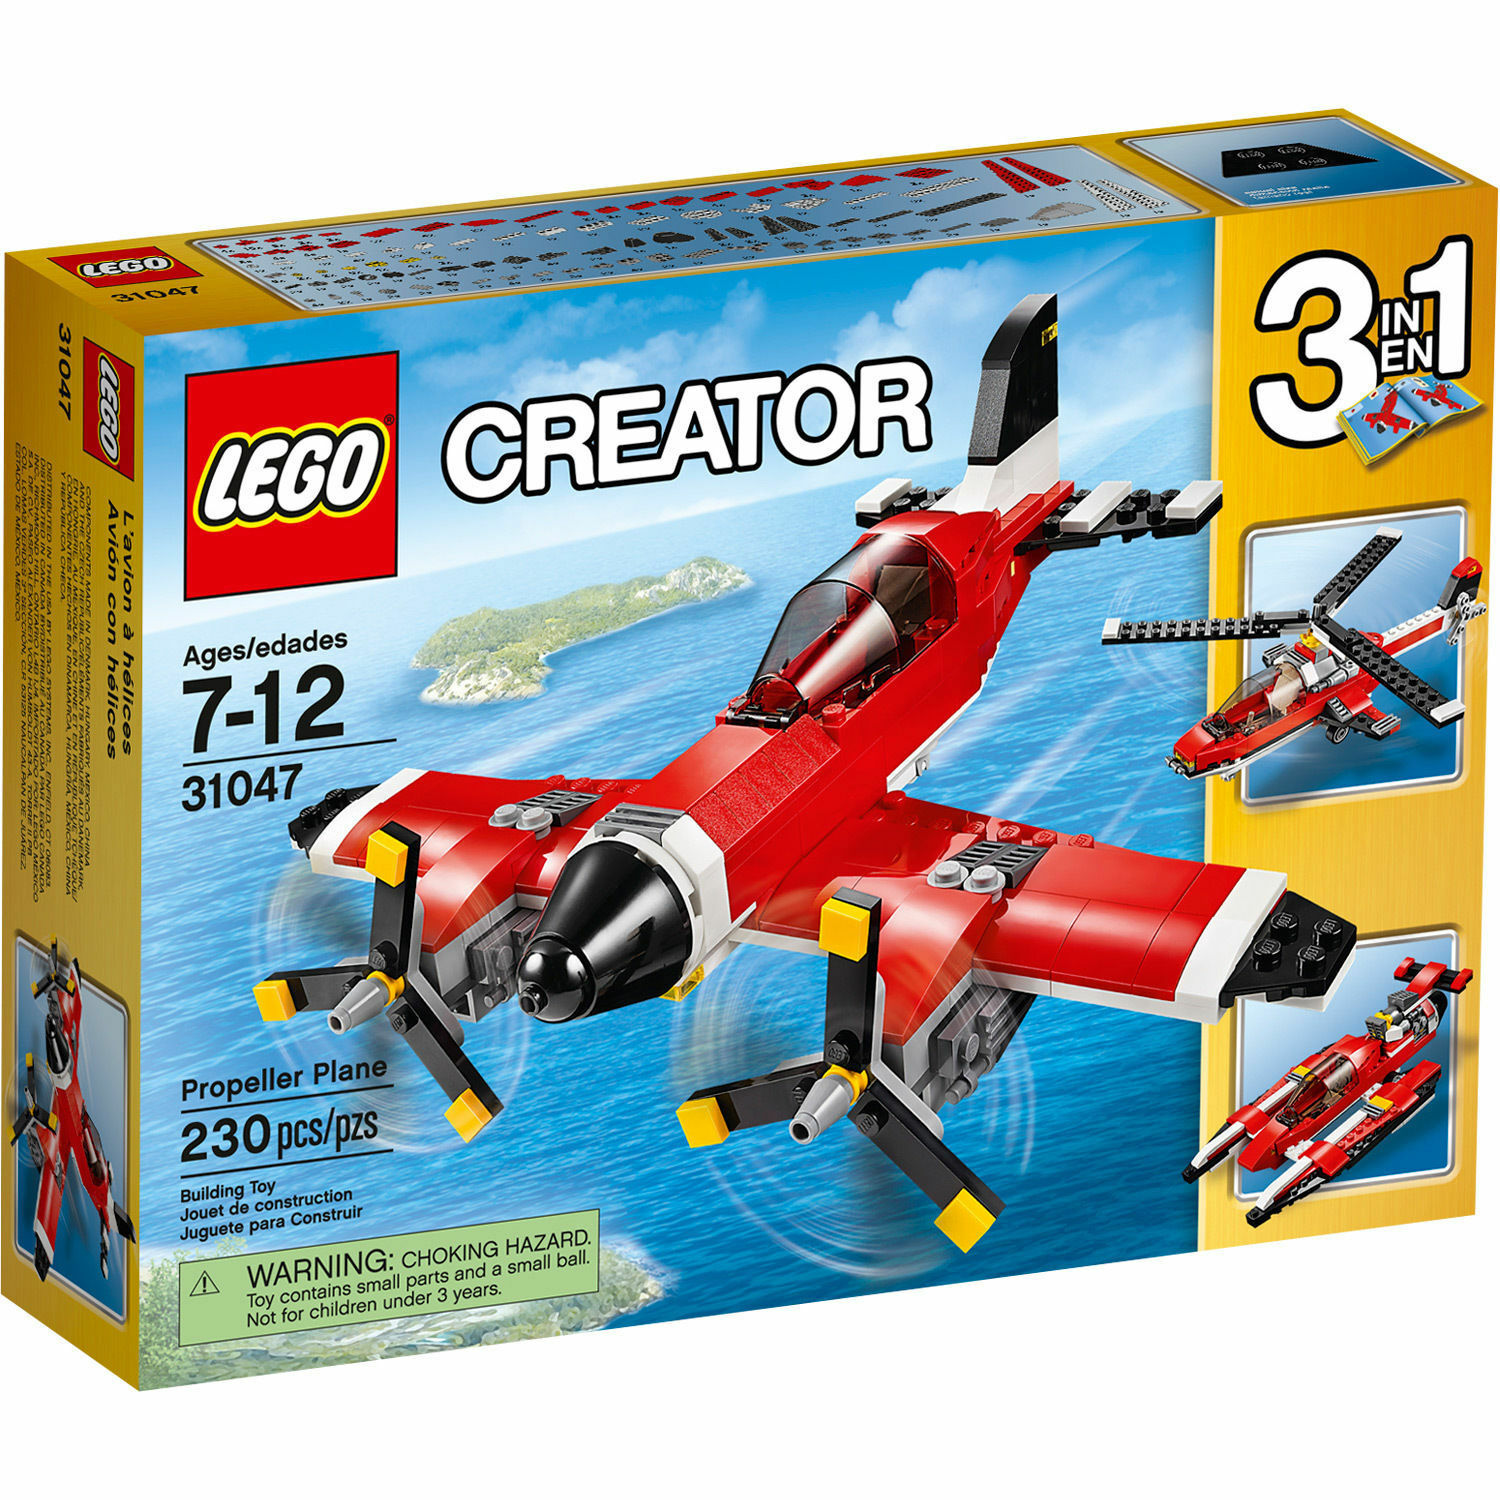 31047 PROPELLER PLANE lego creator NEW LEGOS set 3 in 1 HELICOPTER HYDROPLANE